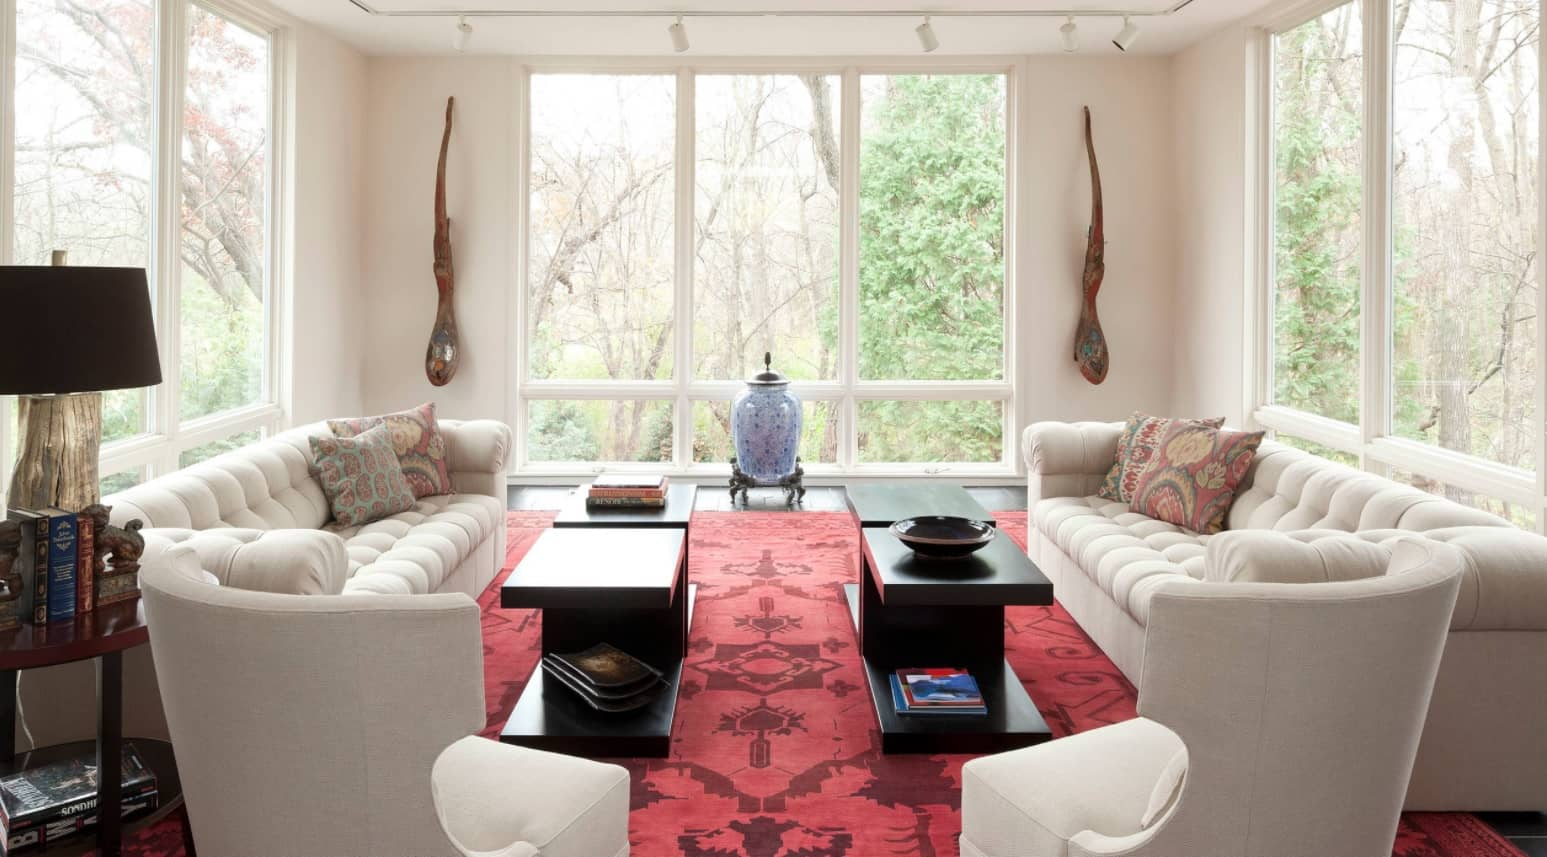 Classic setting of the large and light sitting room with two coffee tables and passage between them